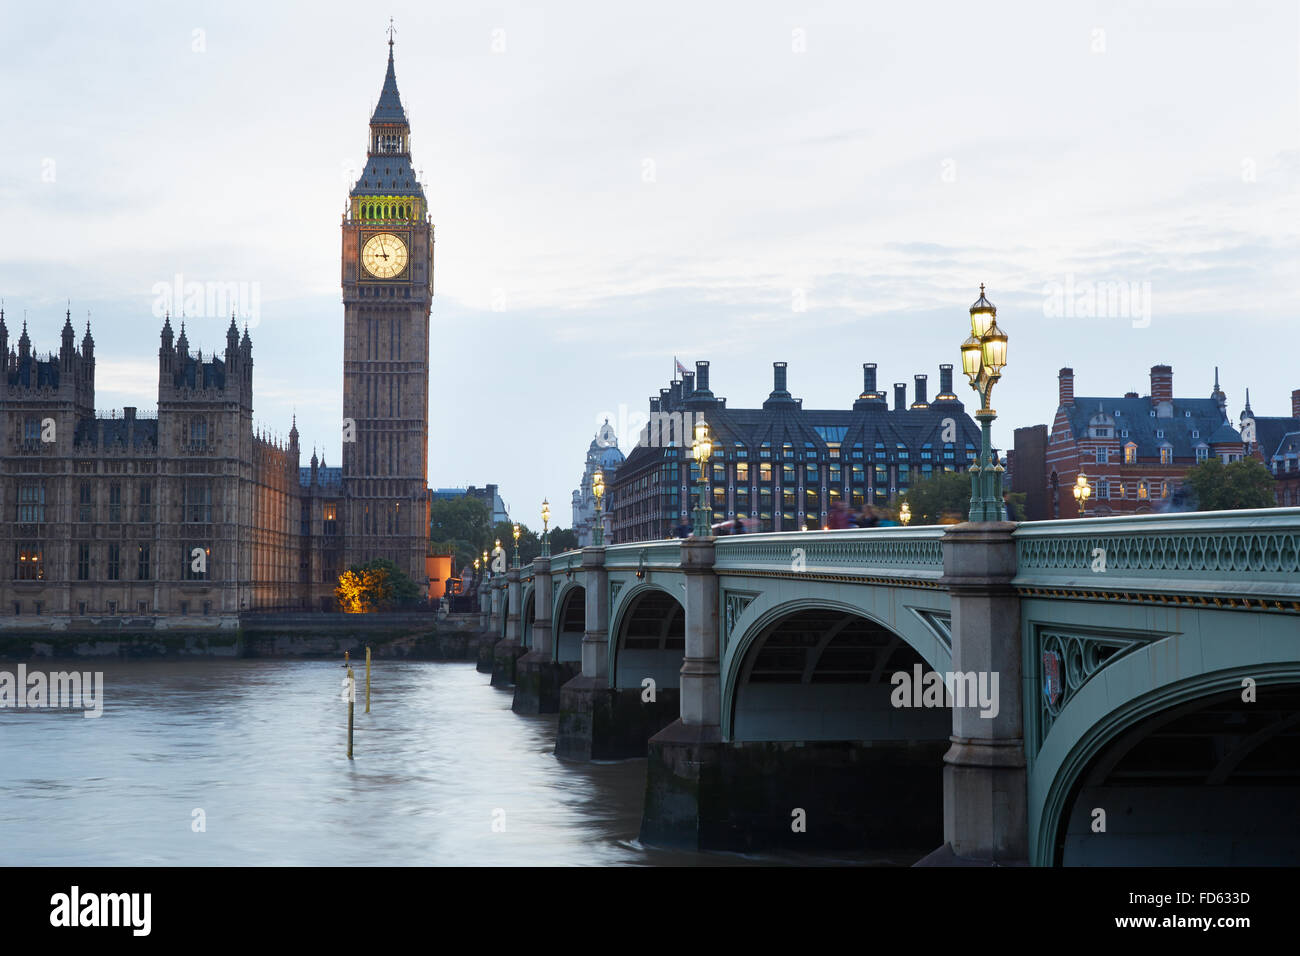 Big Ben and Houses of parliament at dusk in London, natural light and colors - Stock Image